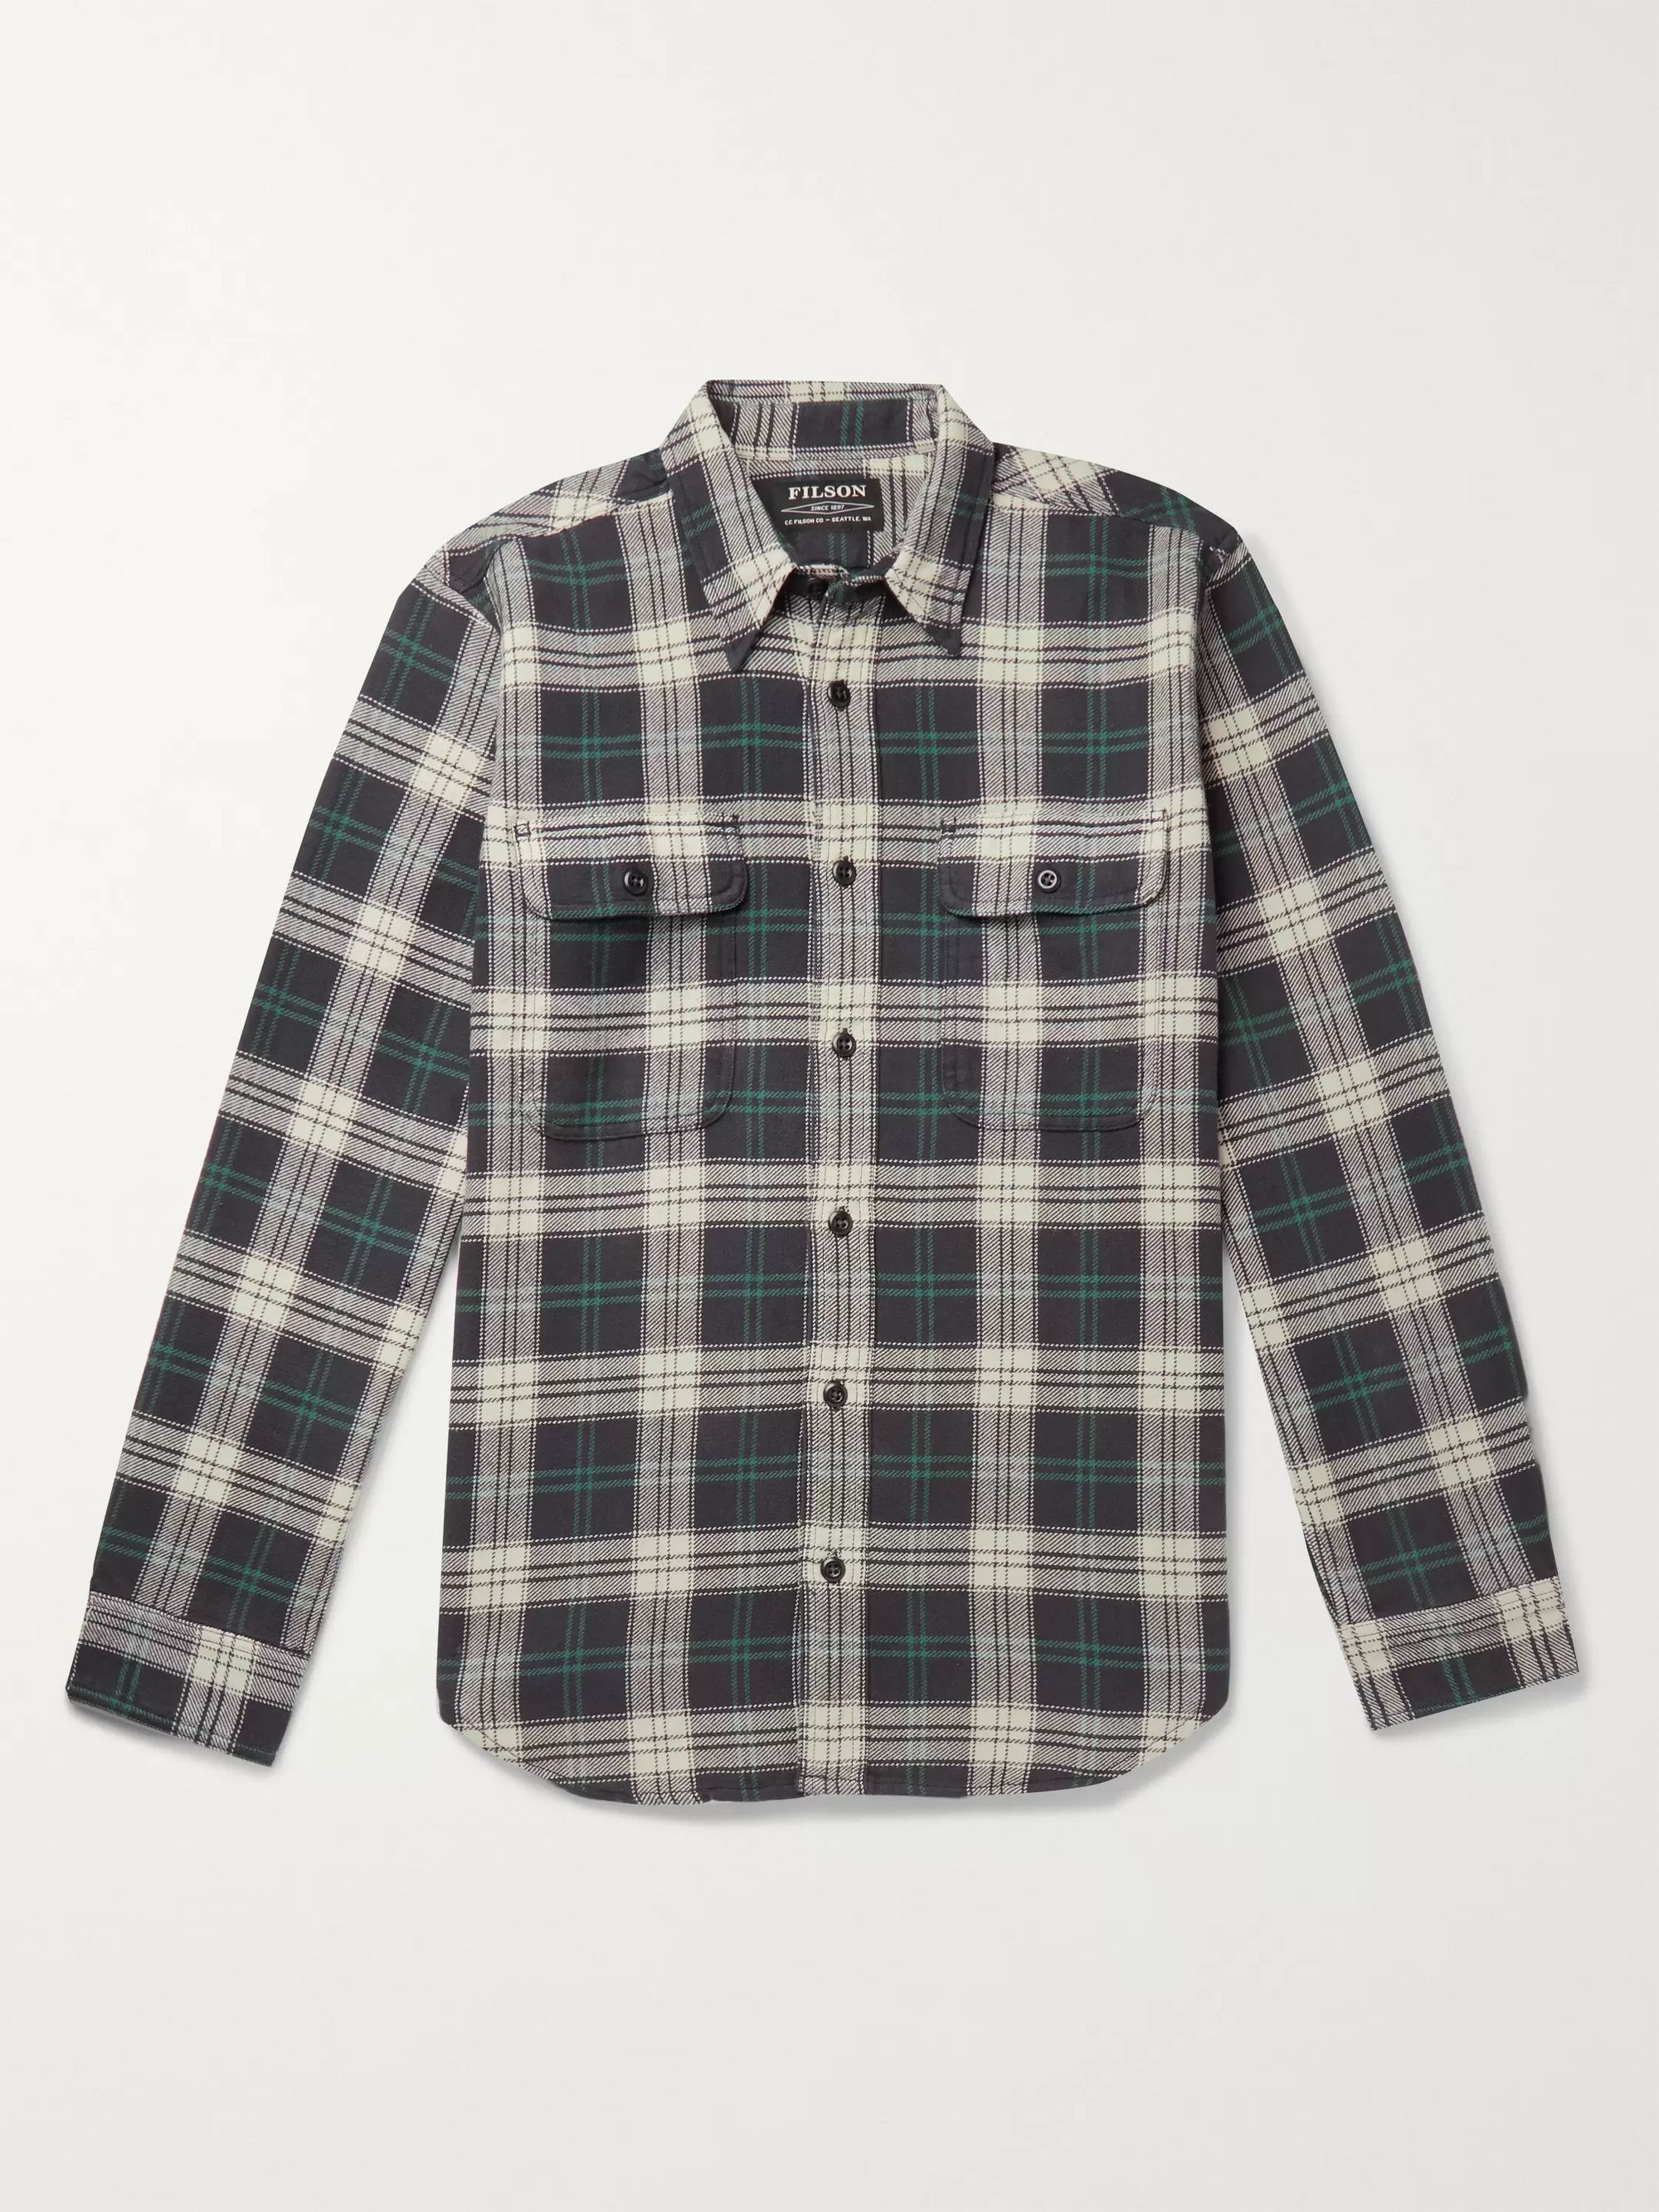 Filson Checked Cotton-Flannel Shirt